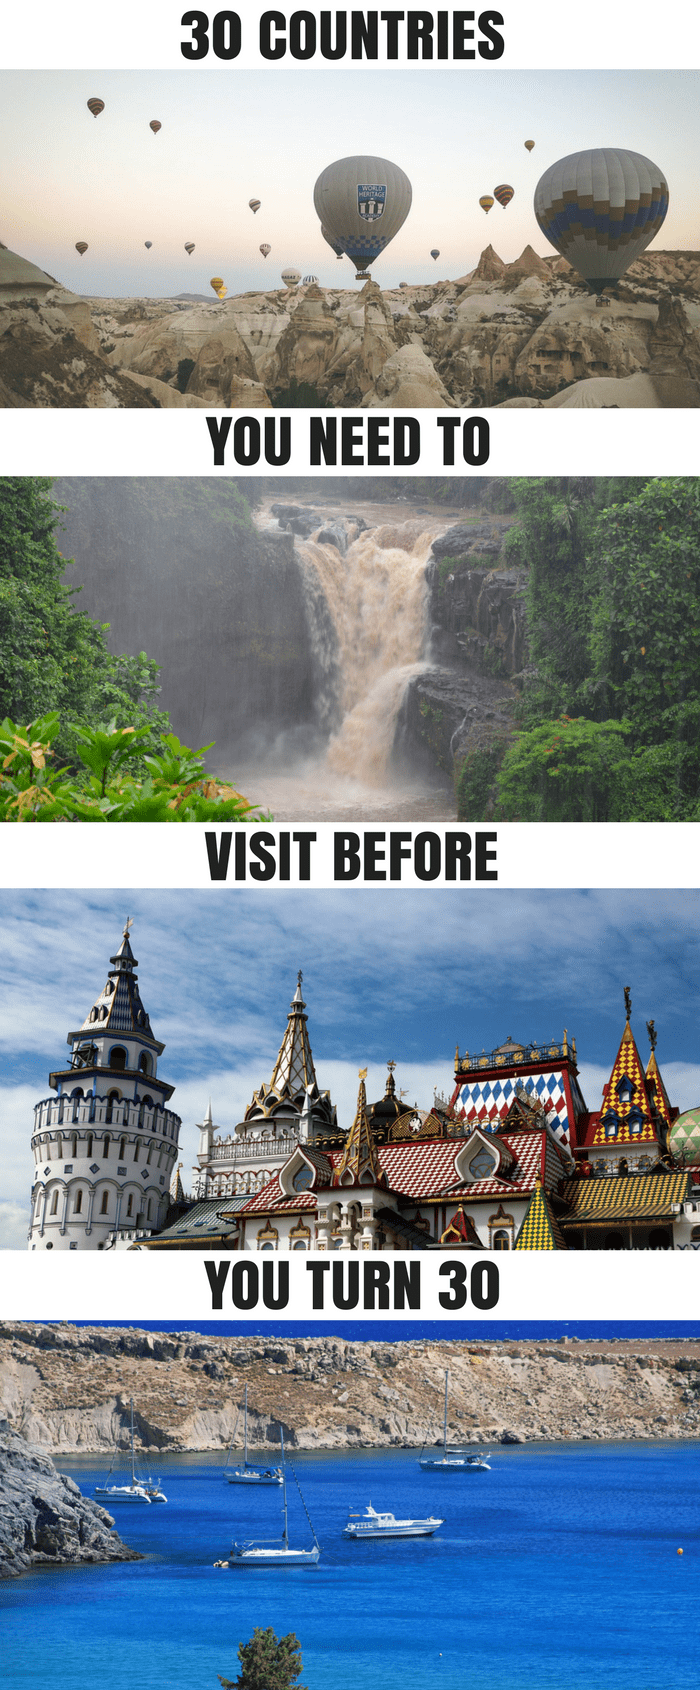 30 countries you should visit before you turn 30: Cuba, Argentina, Russia, Turkey, Indonesia, Cambodia, Peru, India, Italy, France, Germany, Vietnam